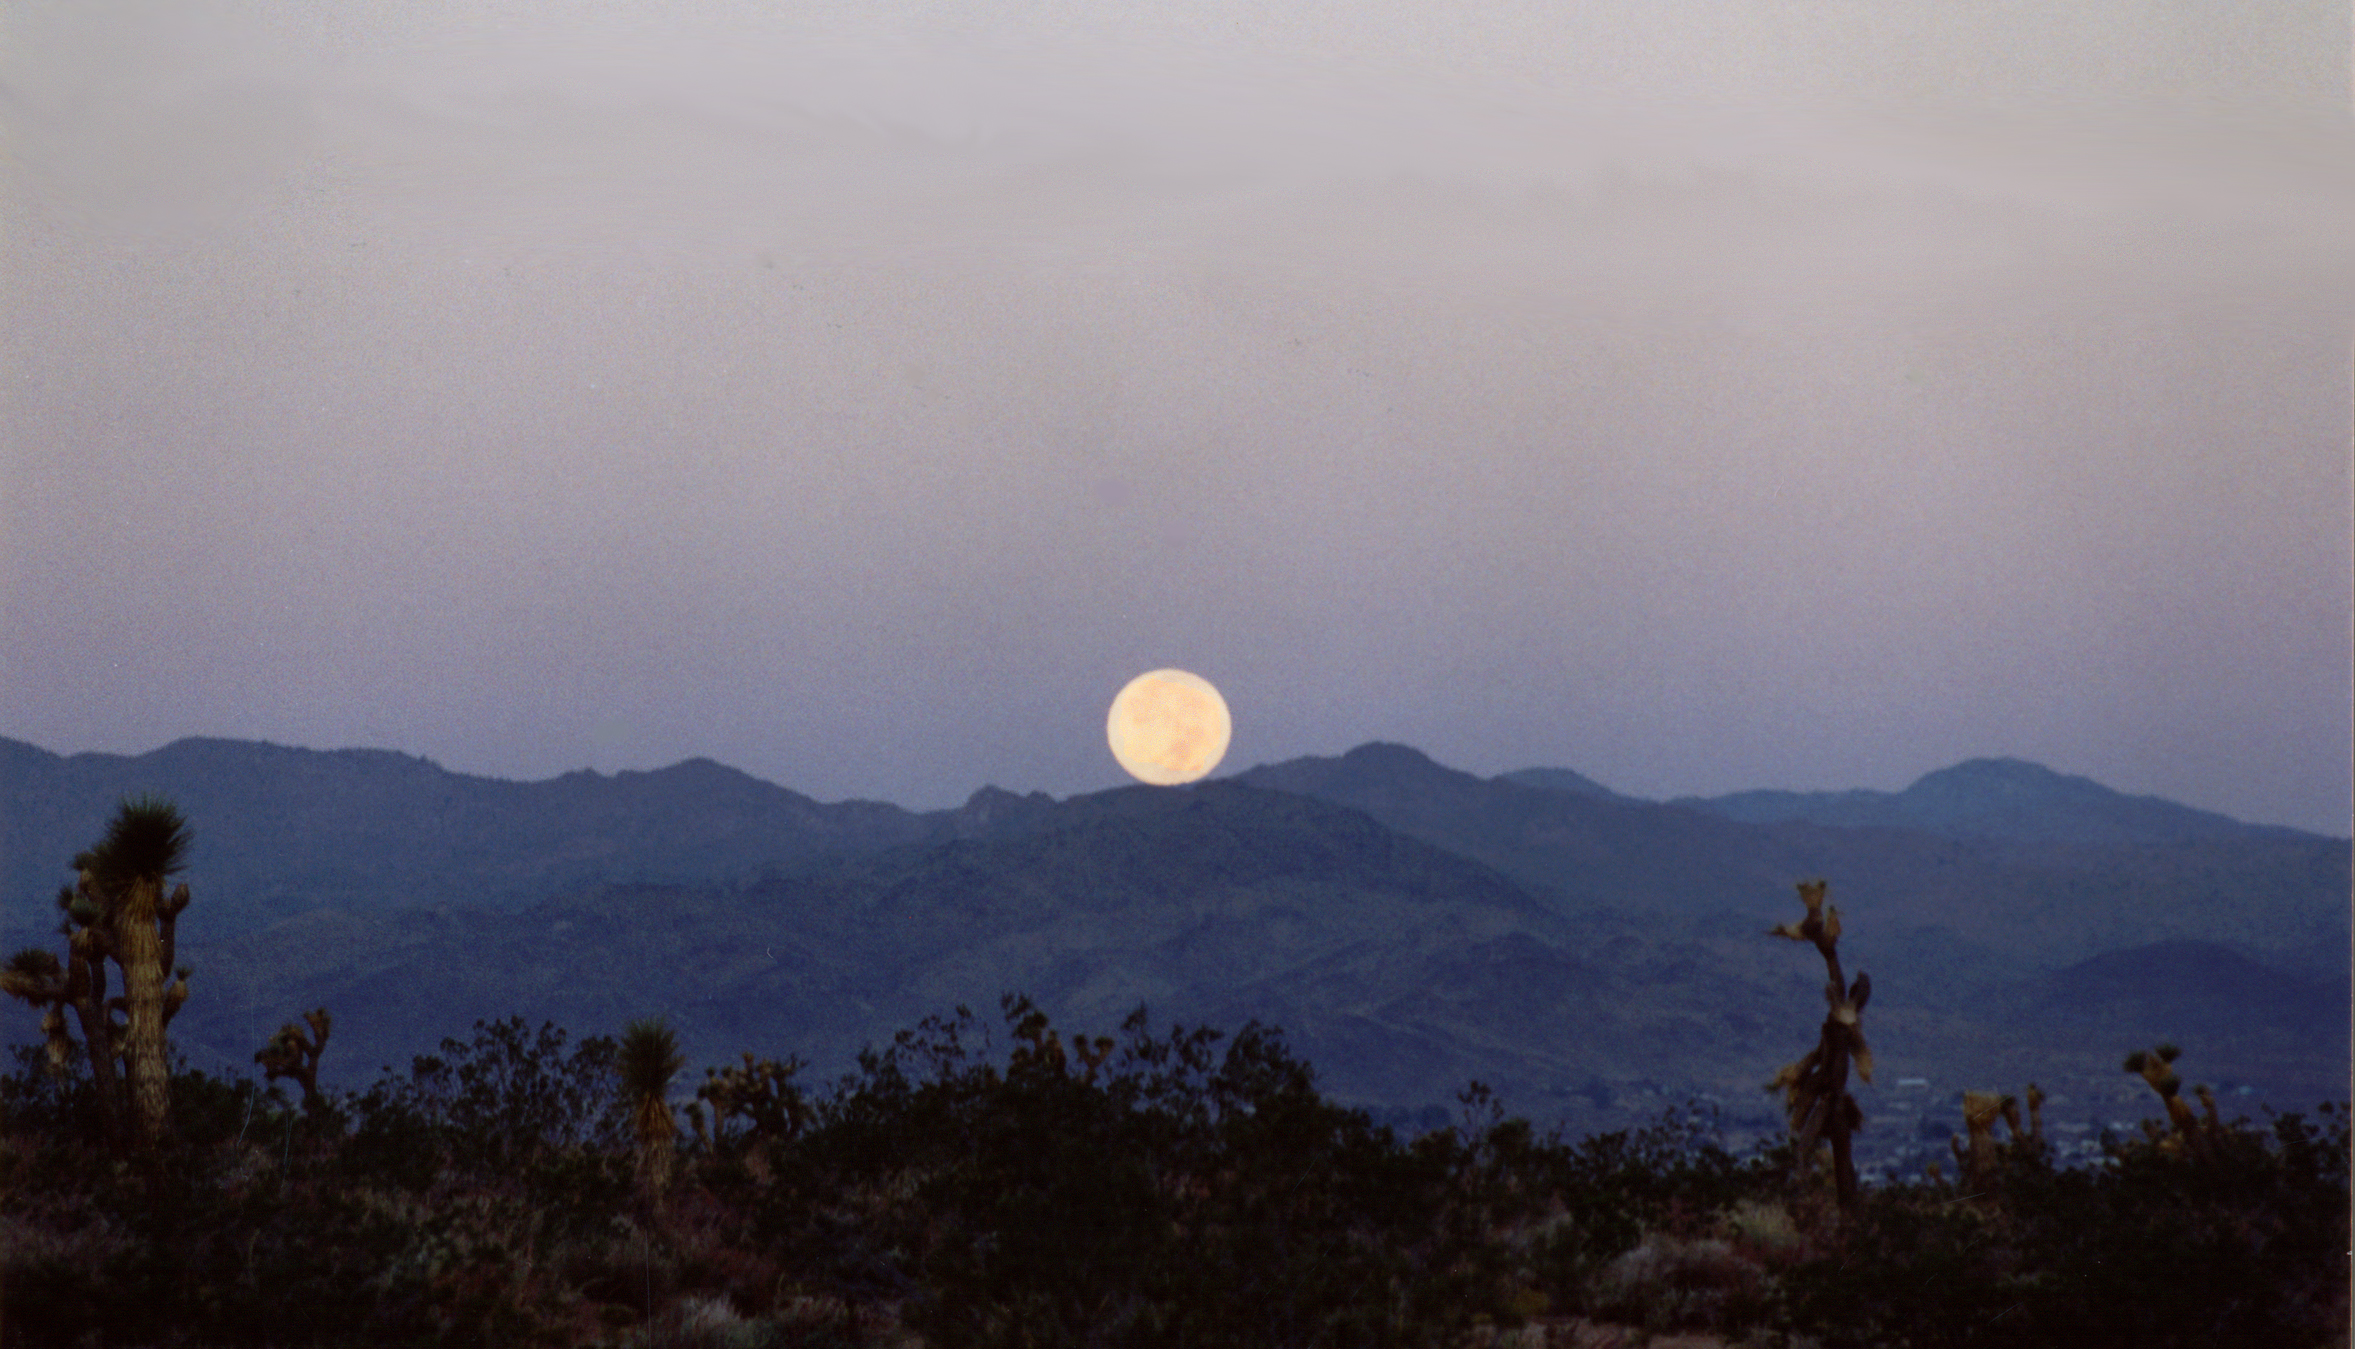 Mountain_Moonset